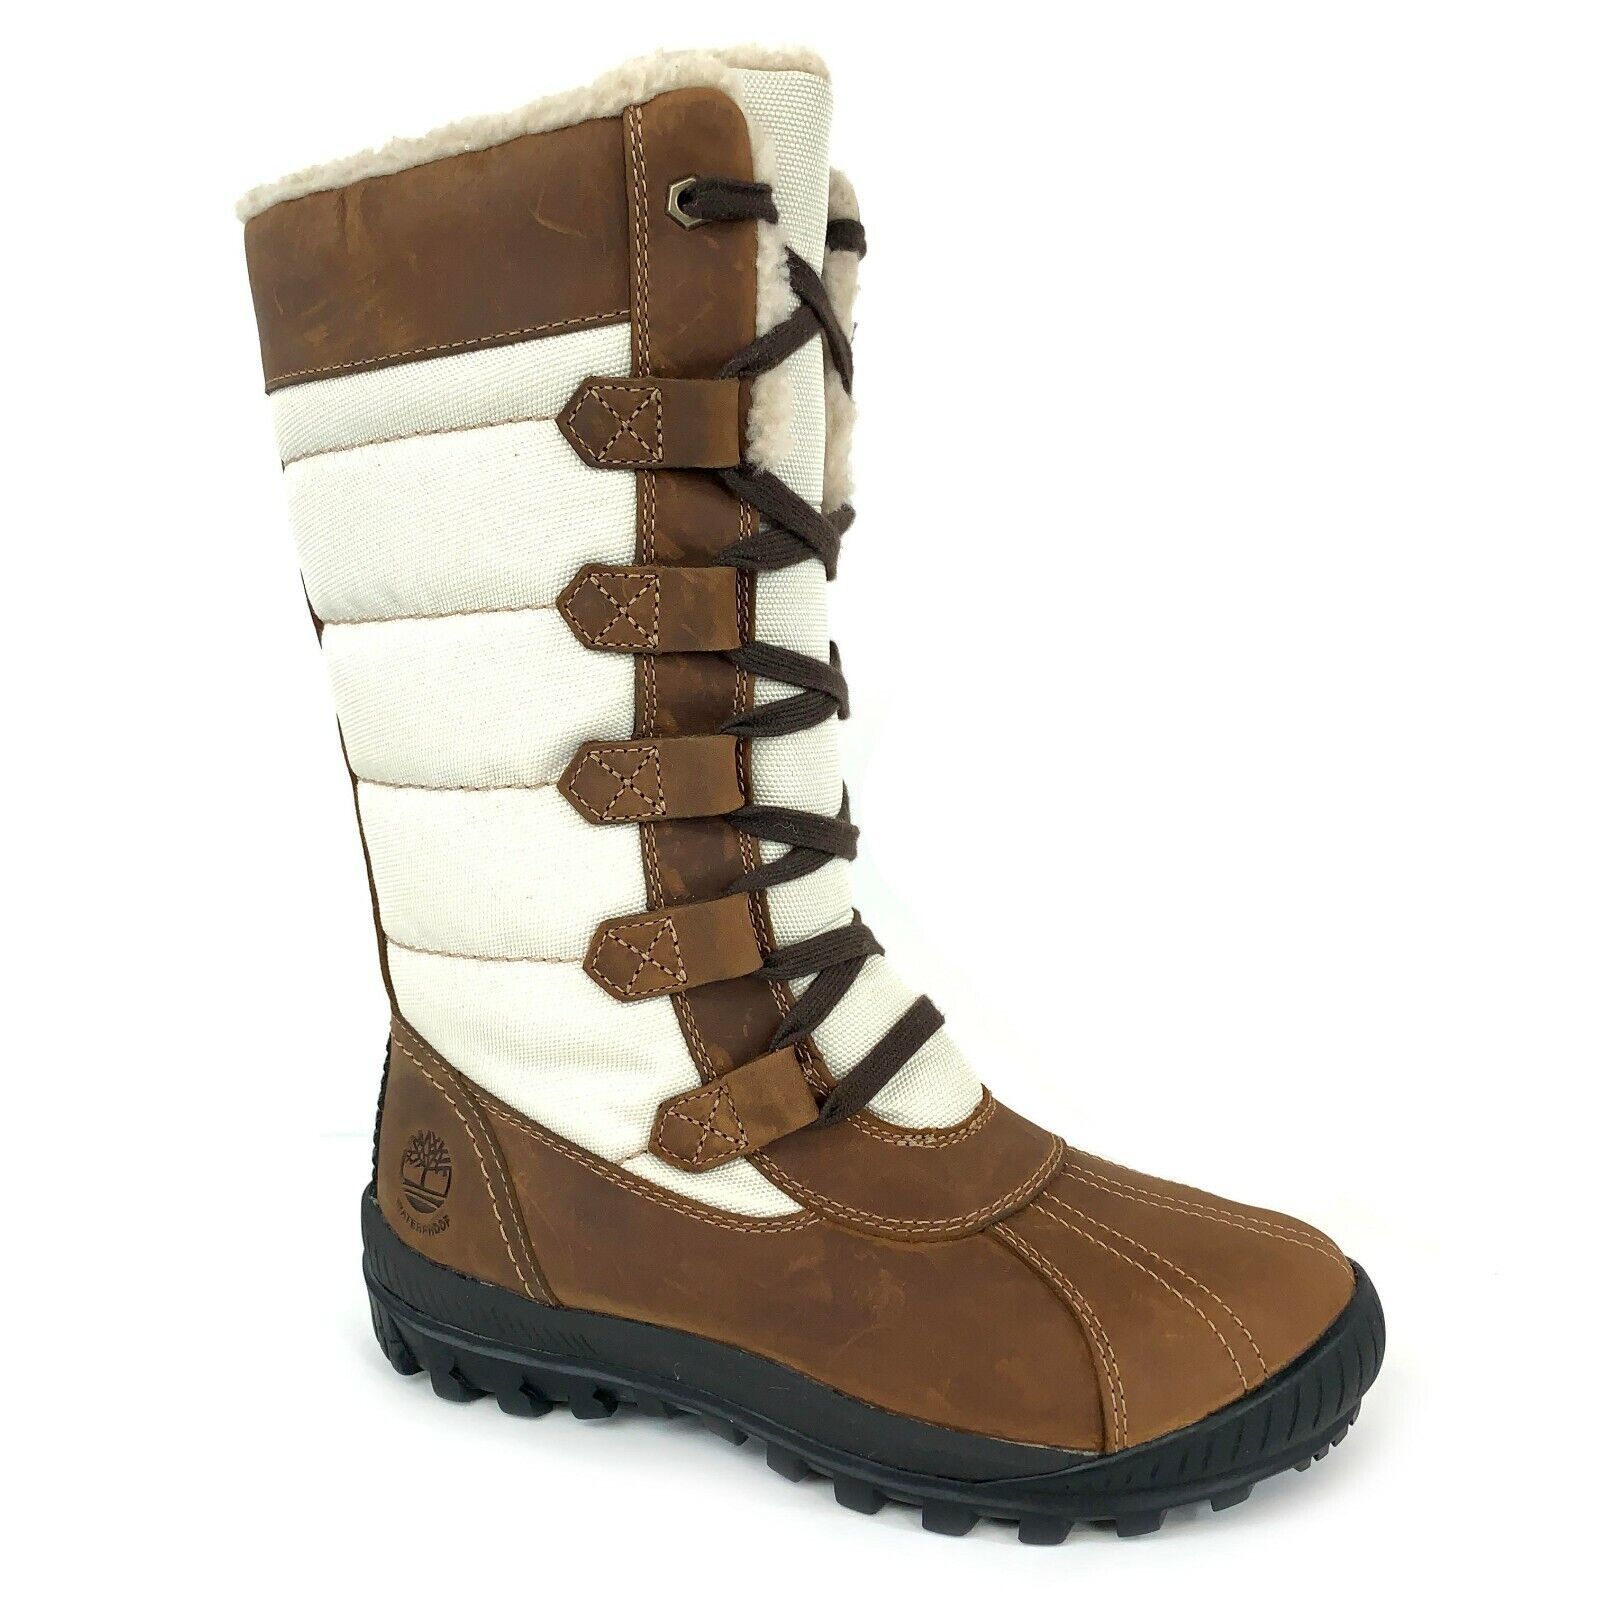 Timberland Women's MT. Hayes Tall Waterproof Brown Boots 6910B Size 6.5